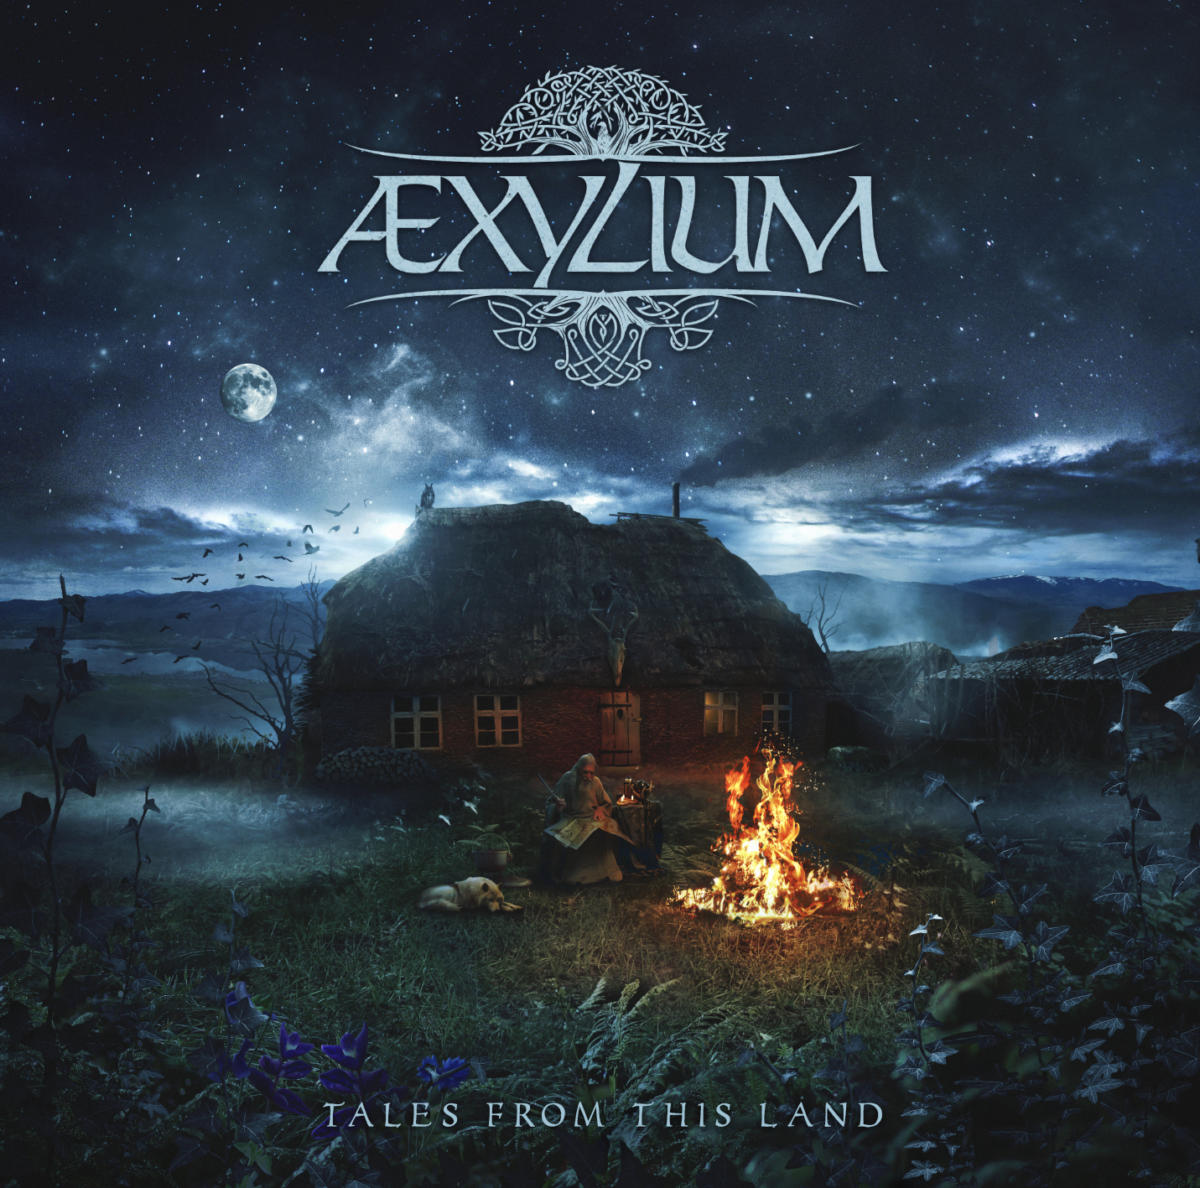 AEXYLIUM-Tales-From-This-Land-1431x1417pixels-RGB